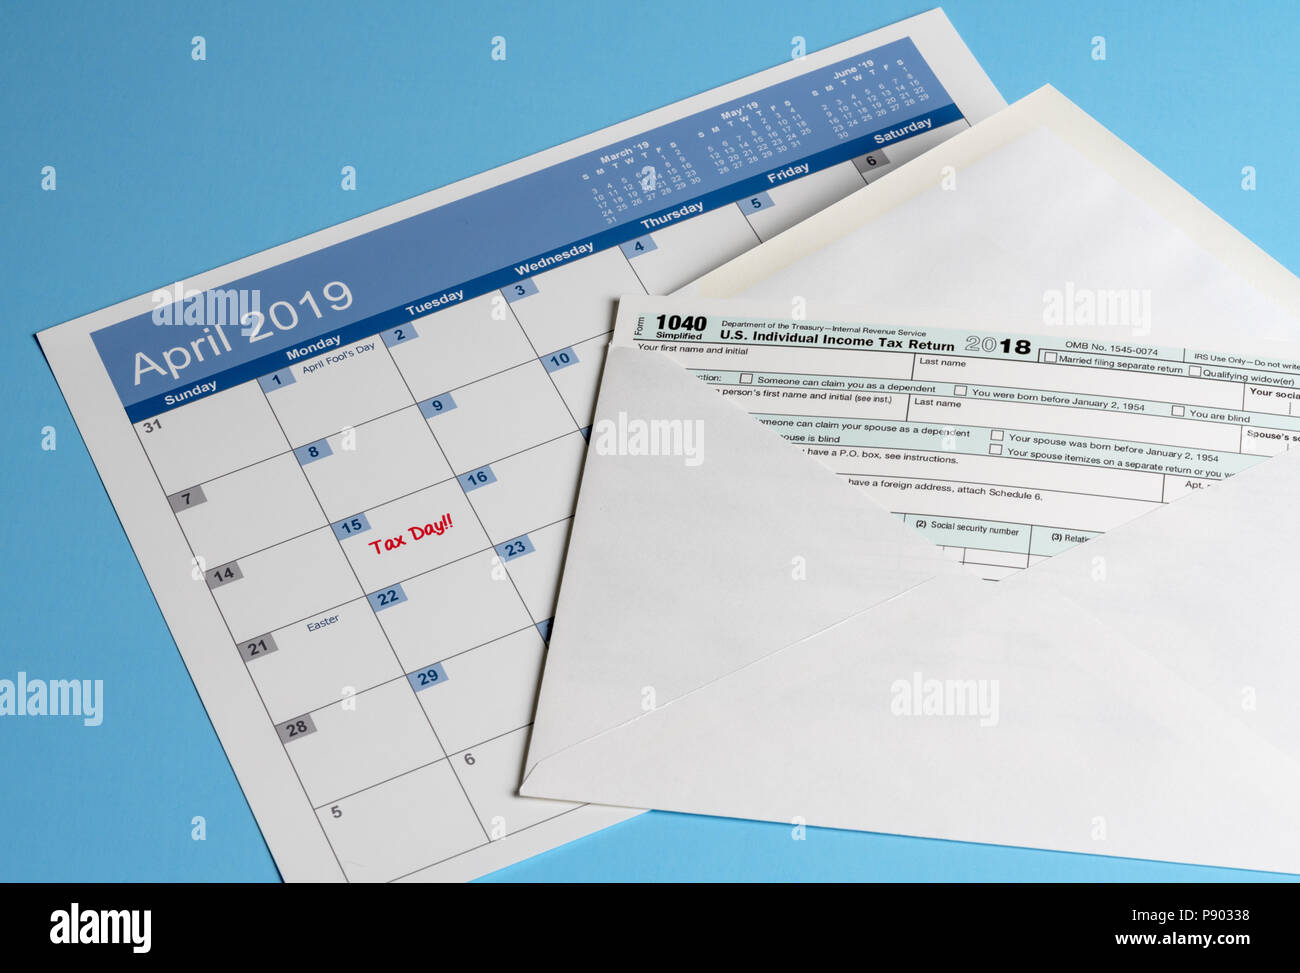 form 1040 mailing  Mailing Form Stock Photos & Mailing Form Stock Images - Alamy